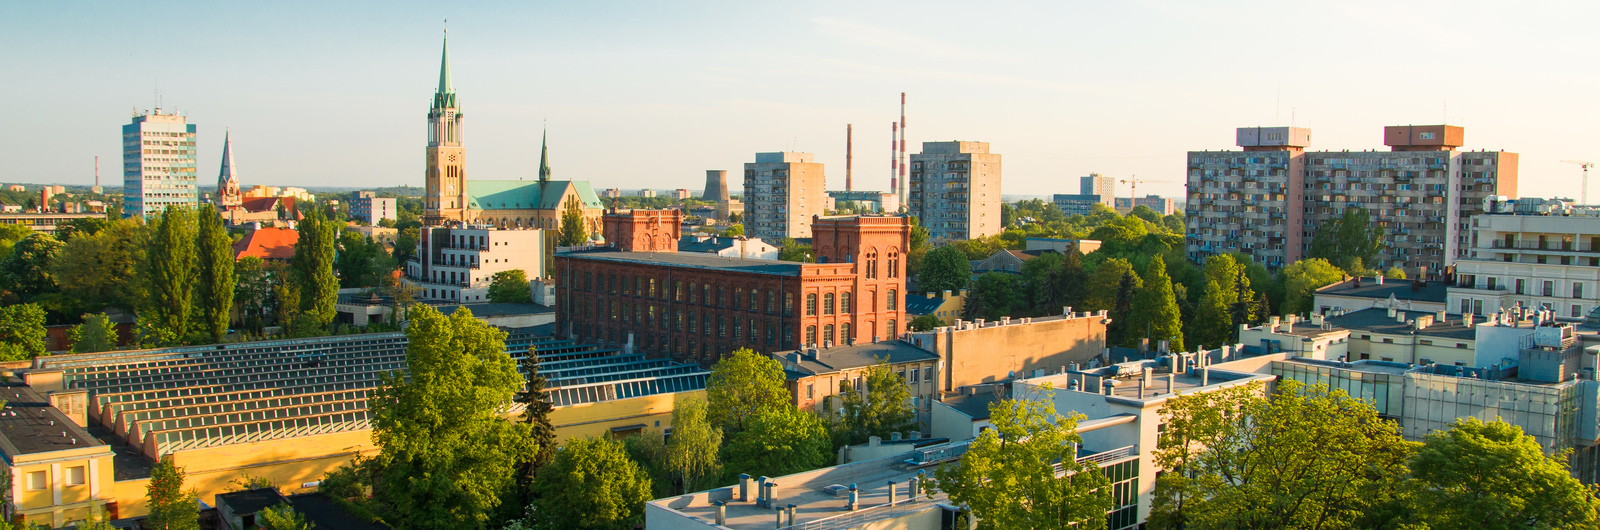 lodz city header